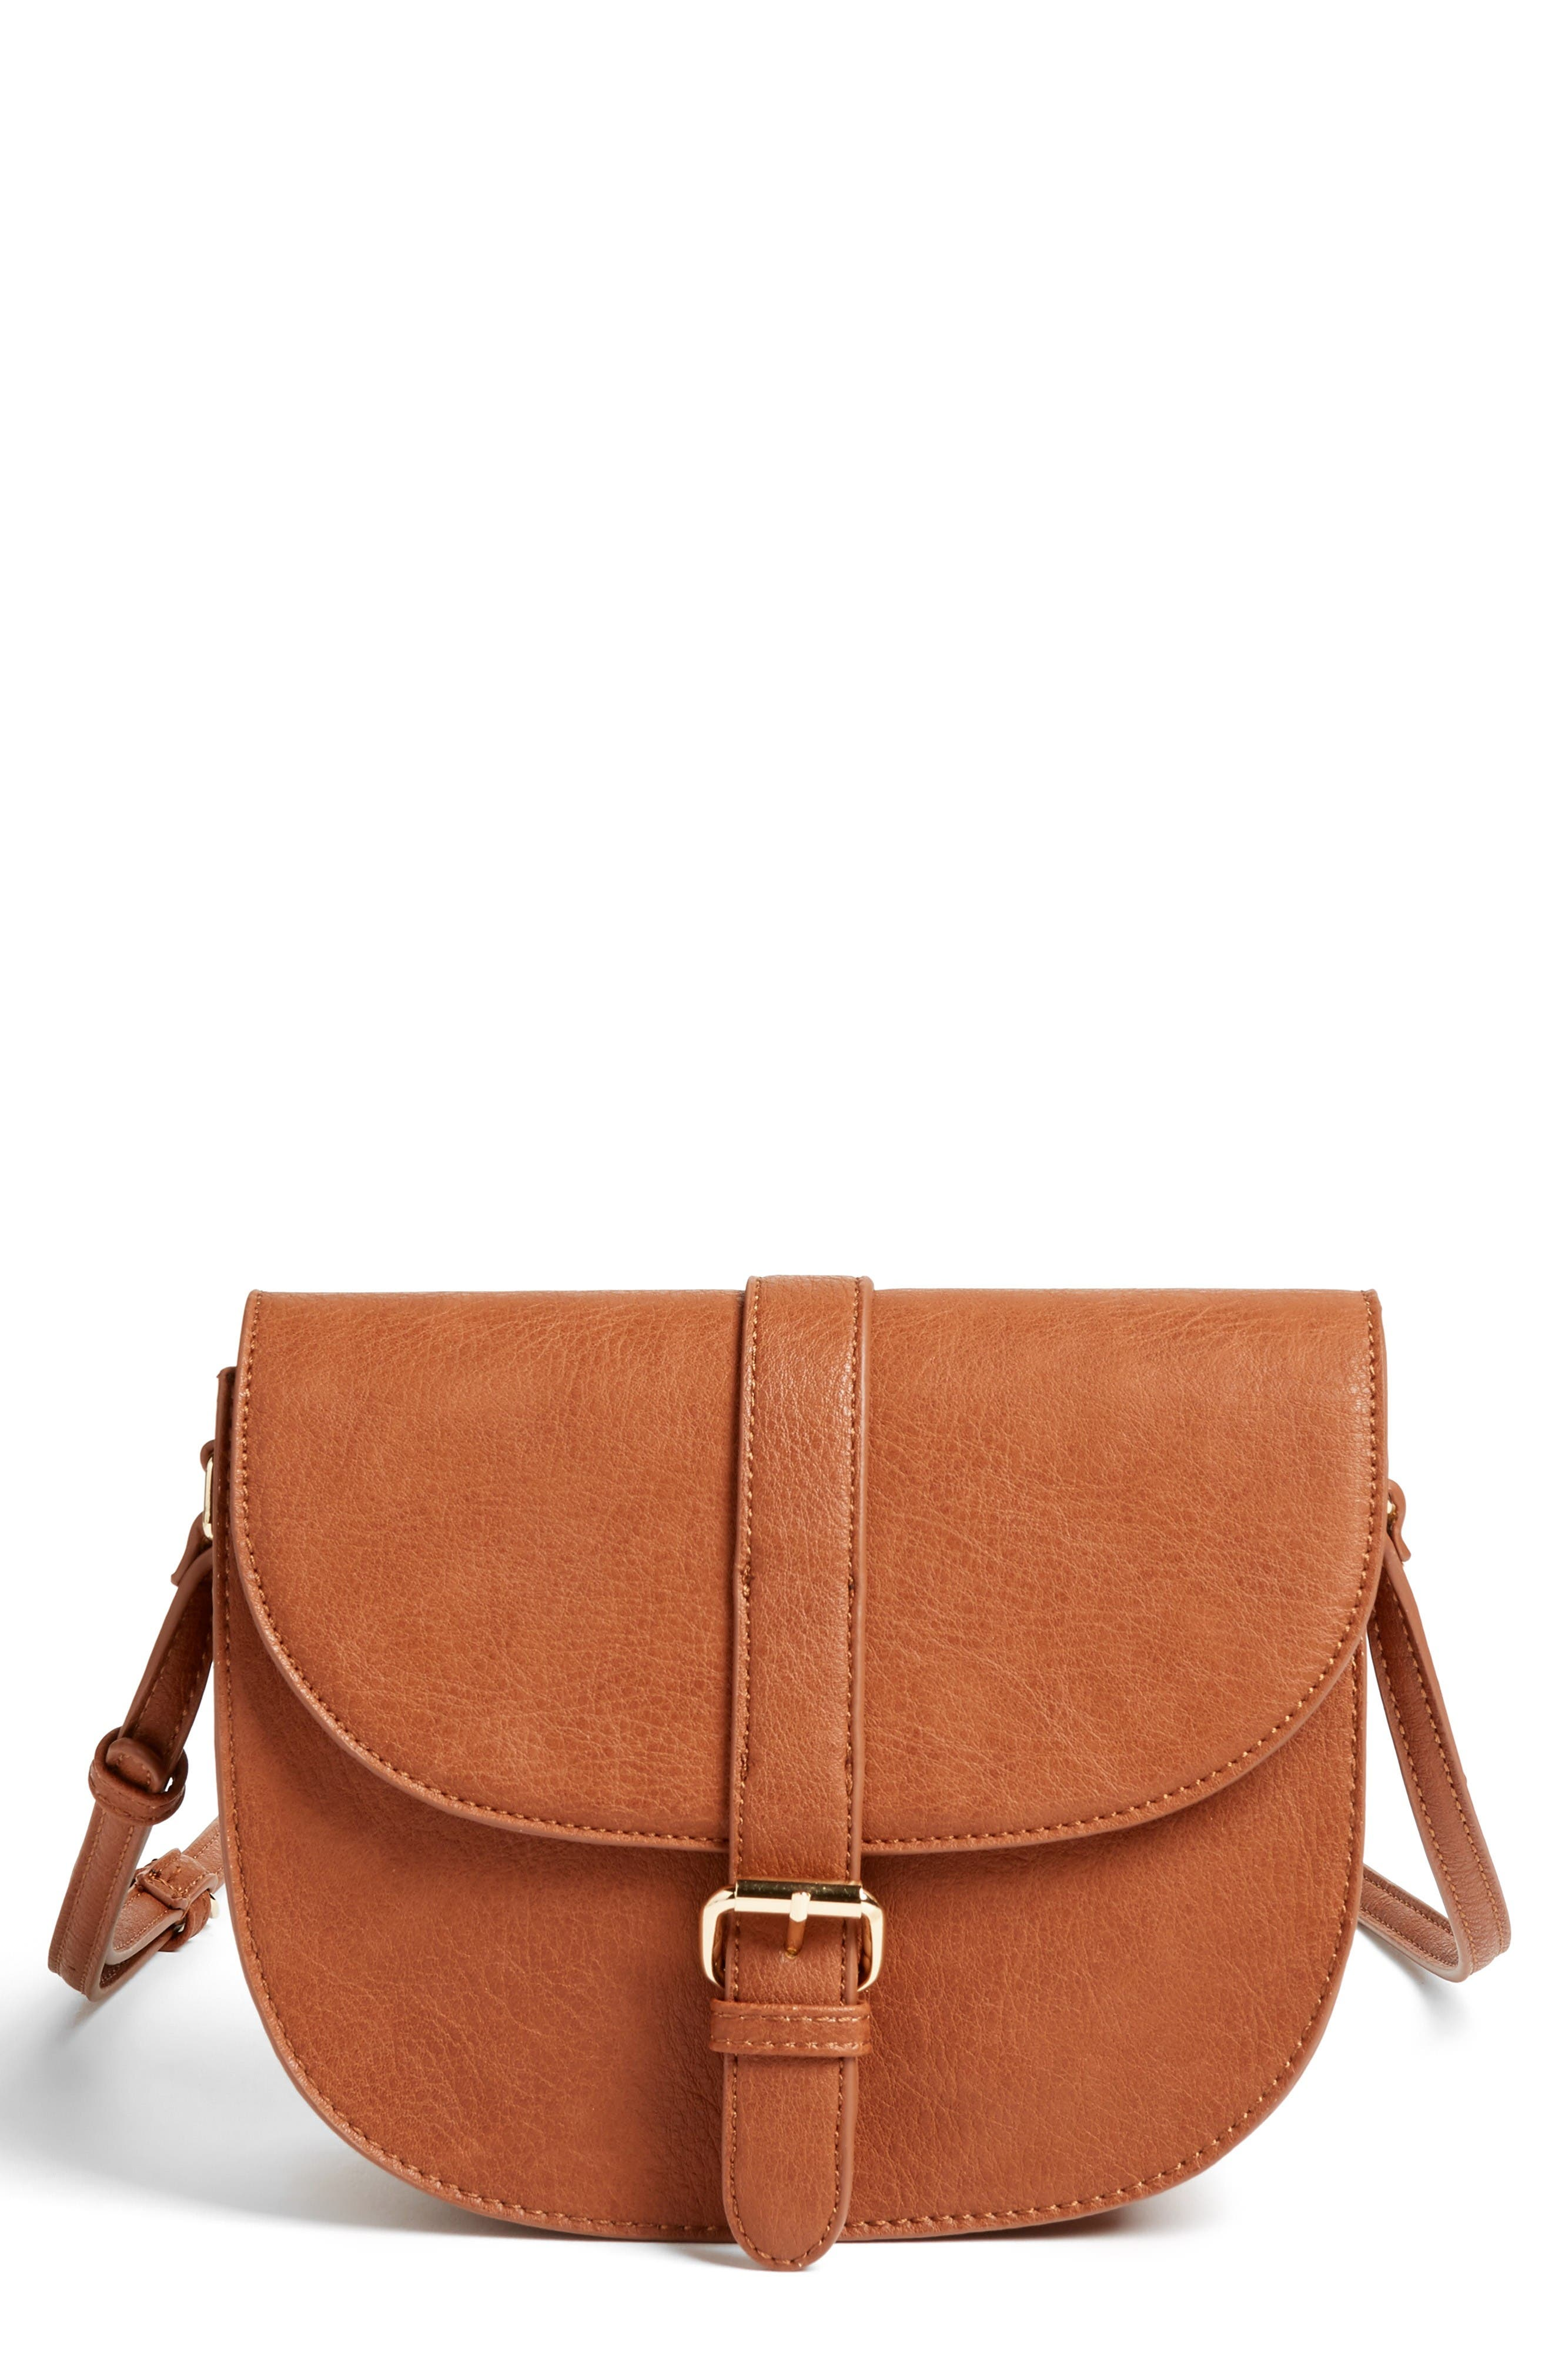 Alternate Image 1 Selected - Emperia Faux Leather Saddle Bag (Special Purchase)